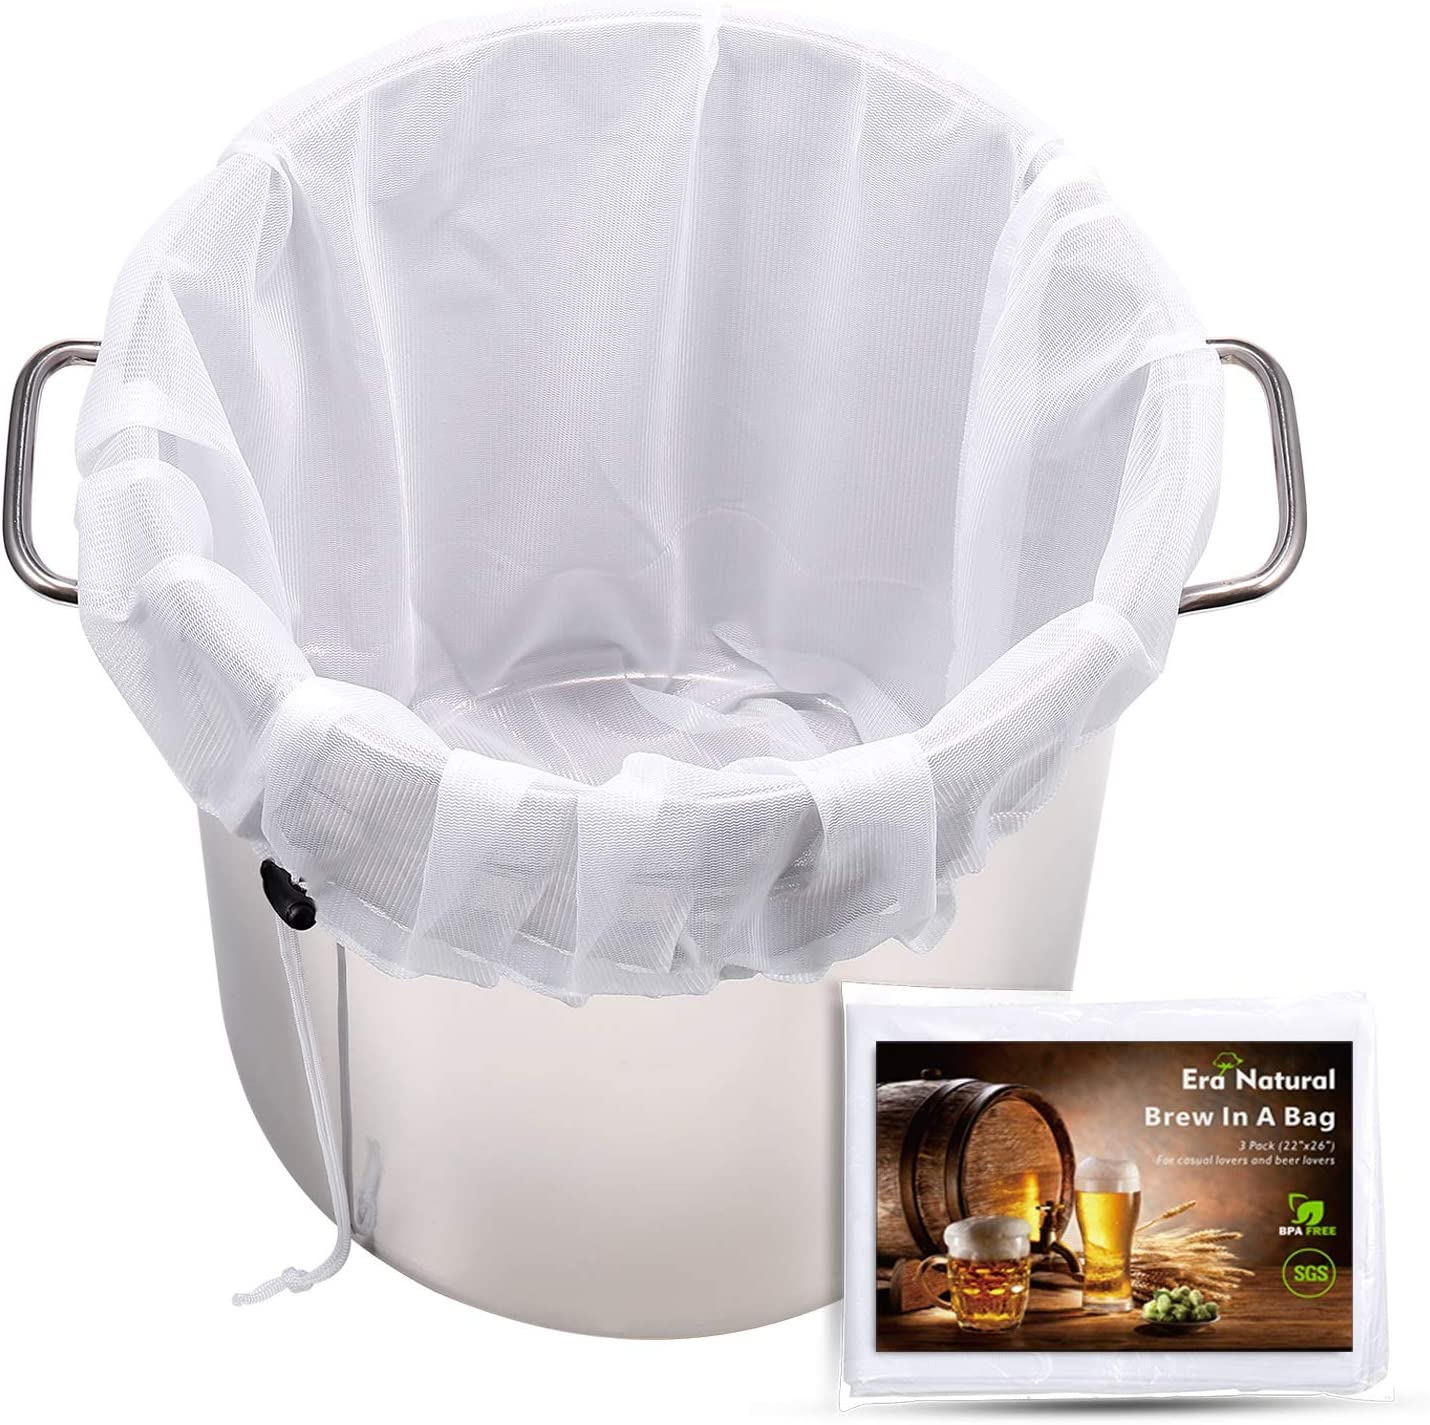 """Extra Large Brew Bags Reusable, 3 Pack 26""""x22"""" Fine Mesh Strainer Bag for Home Brewing Hops Grains Fruit Cider Apple Grape Wine Beer Making Press Drawstring Straining Brew in a Bag"""